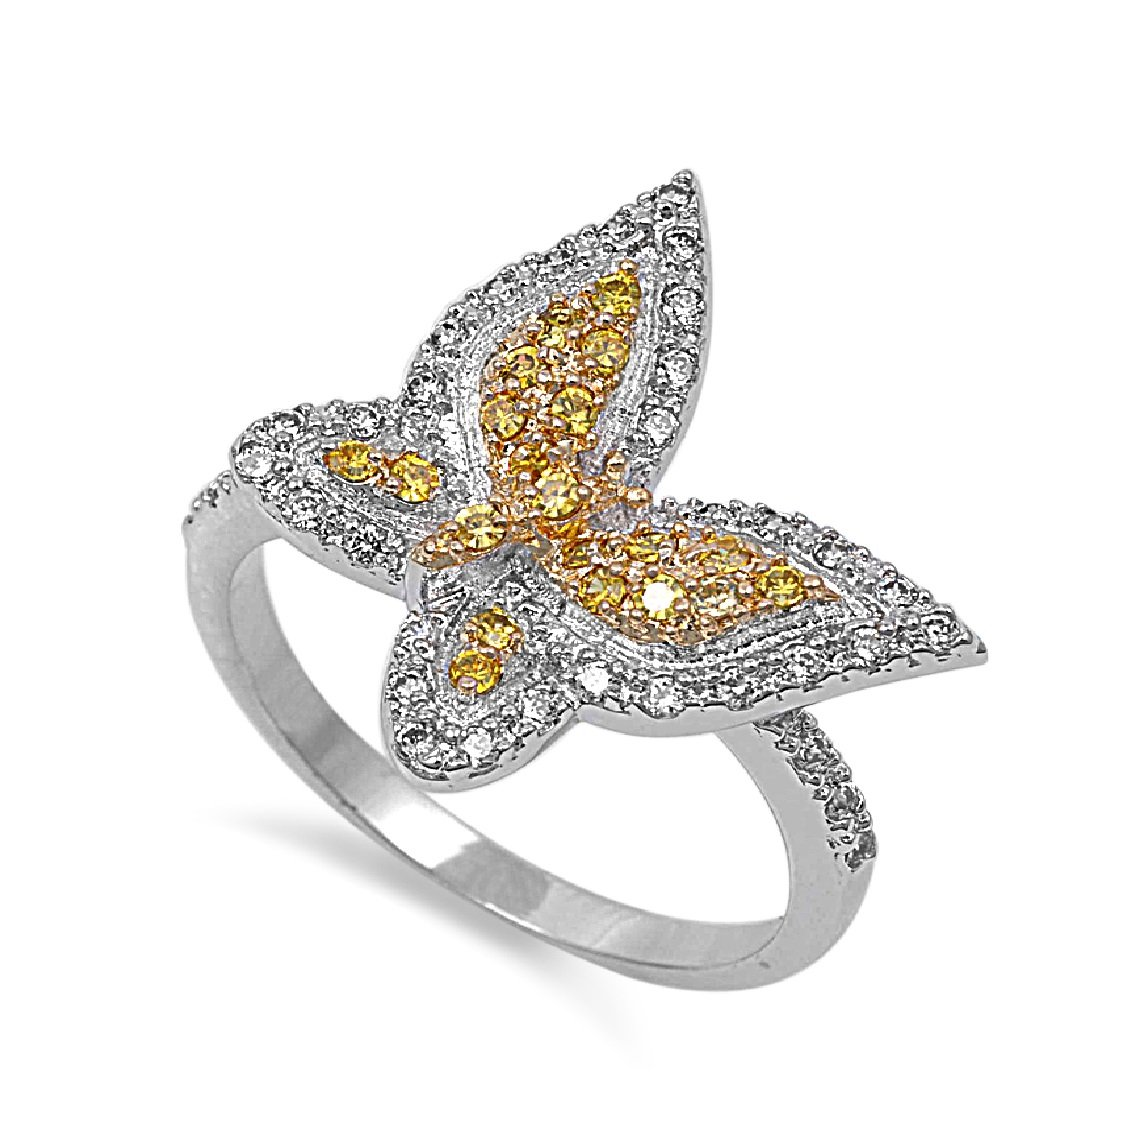 CloseoutWarehouse Clear Cubic Zirconia Adjustable Band Ring Yellow Gold-Tone Sterling Silver